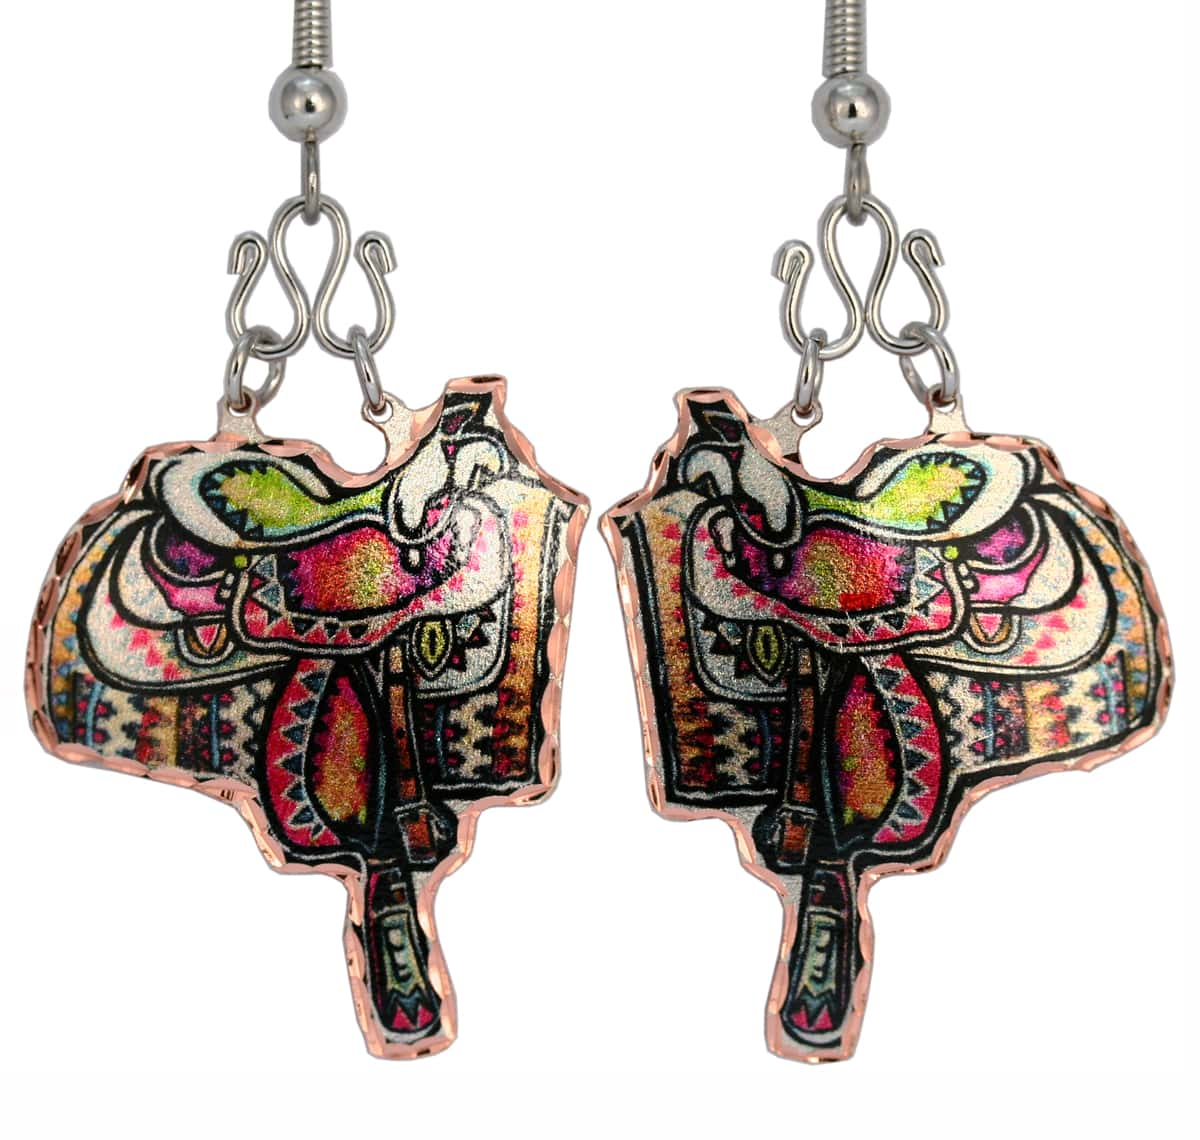 Colorful Western Saddle Earrings Embellished With Wires